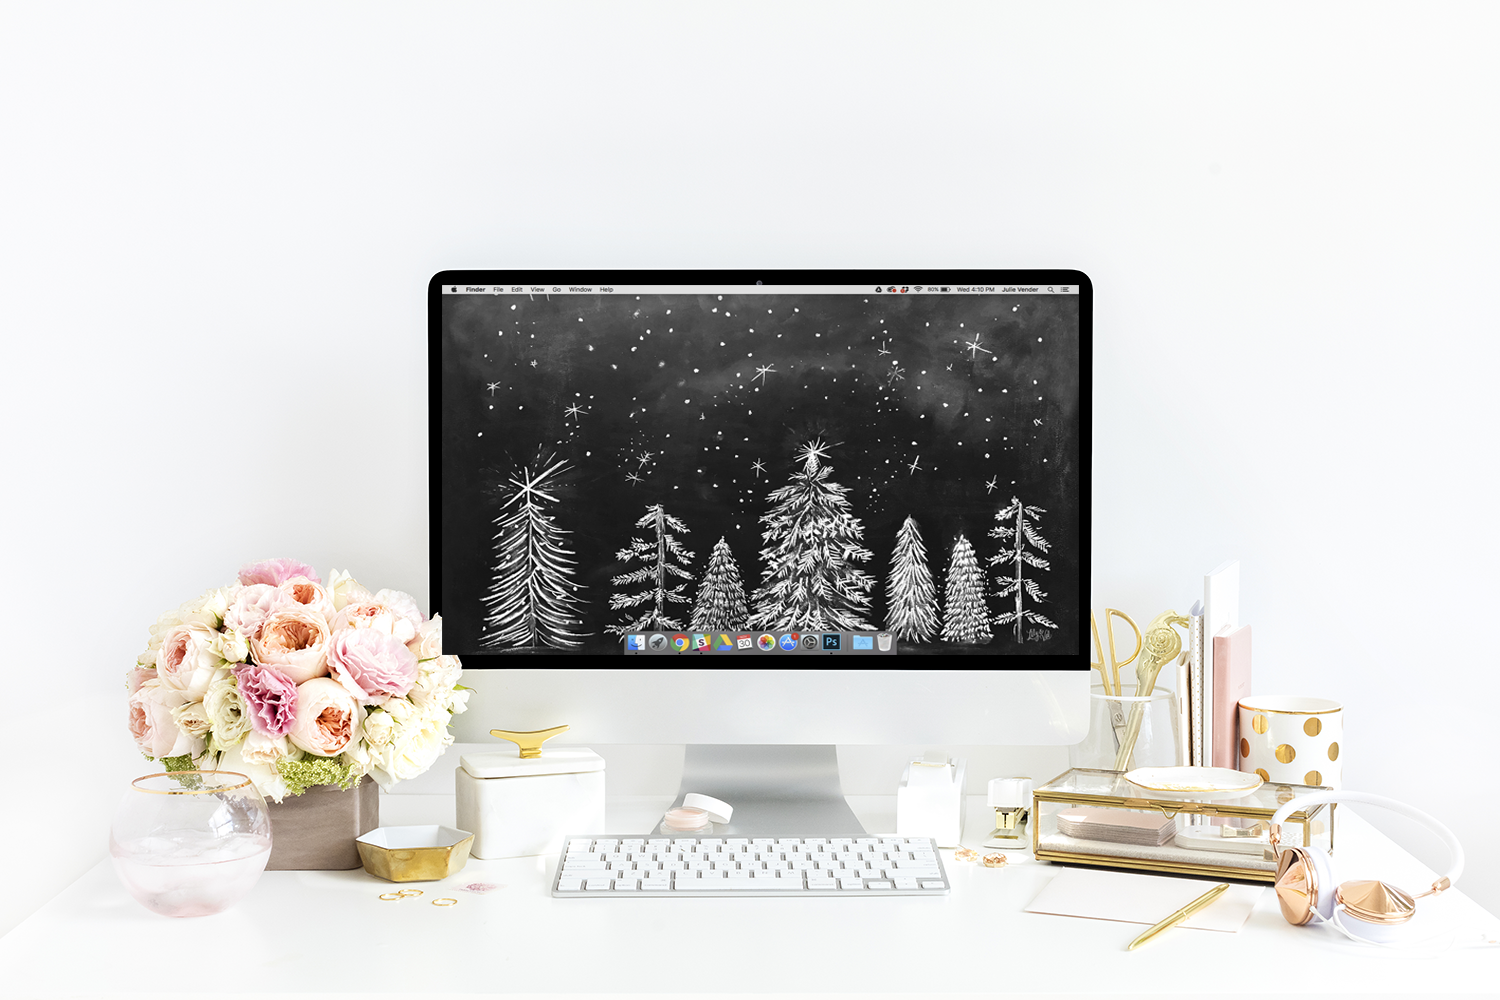 Lily and Val chalk drawing of Christmas trees free desktop download for holiday season